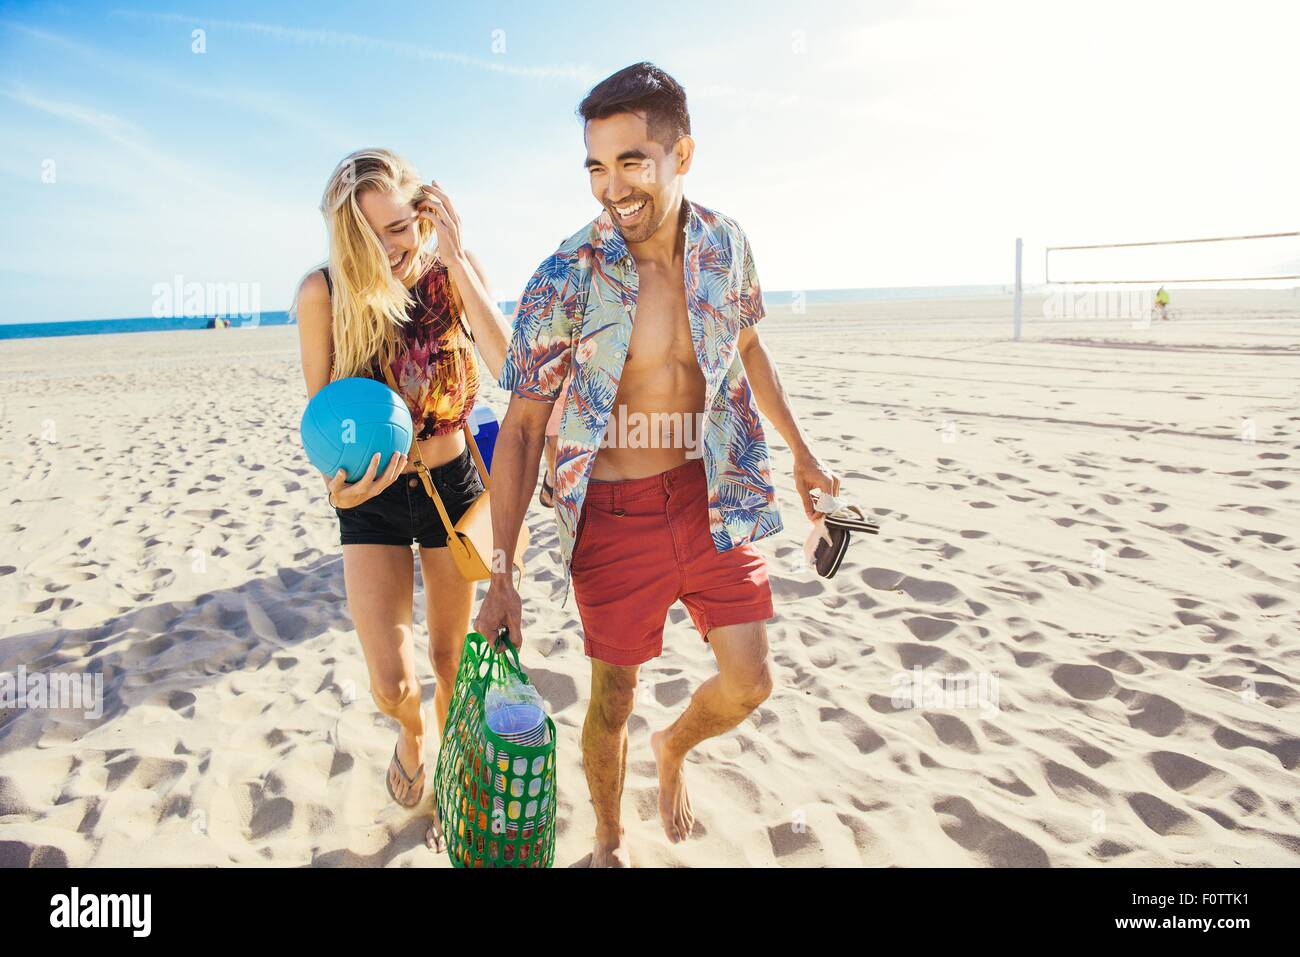 Jeune couple walking on beach, prêt pour un pique-nique Photo Stock